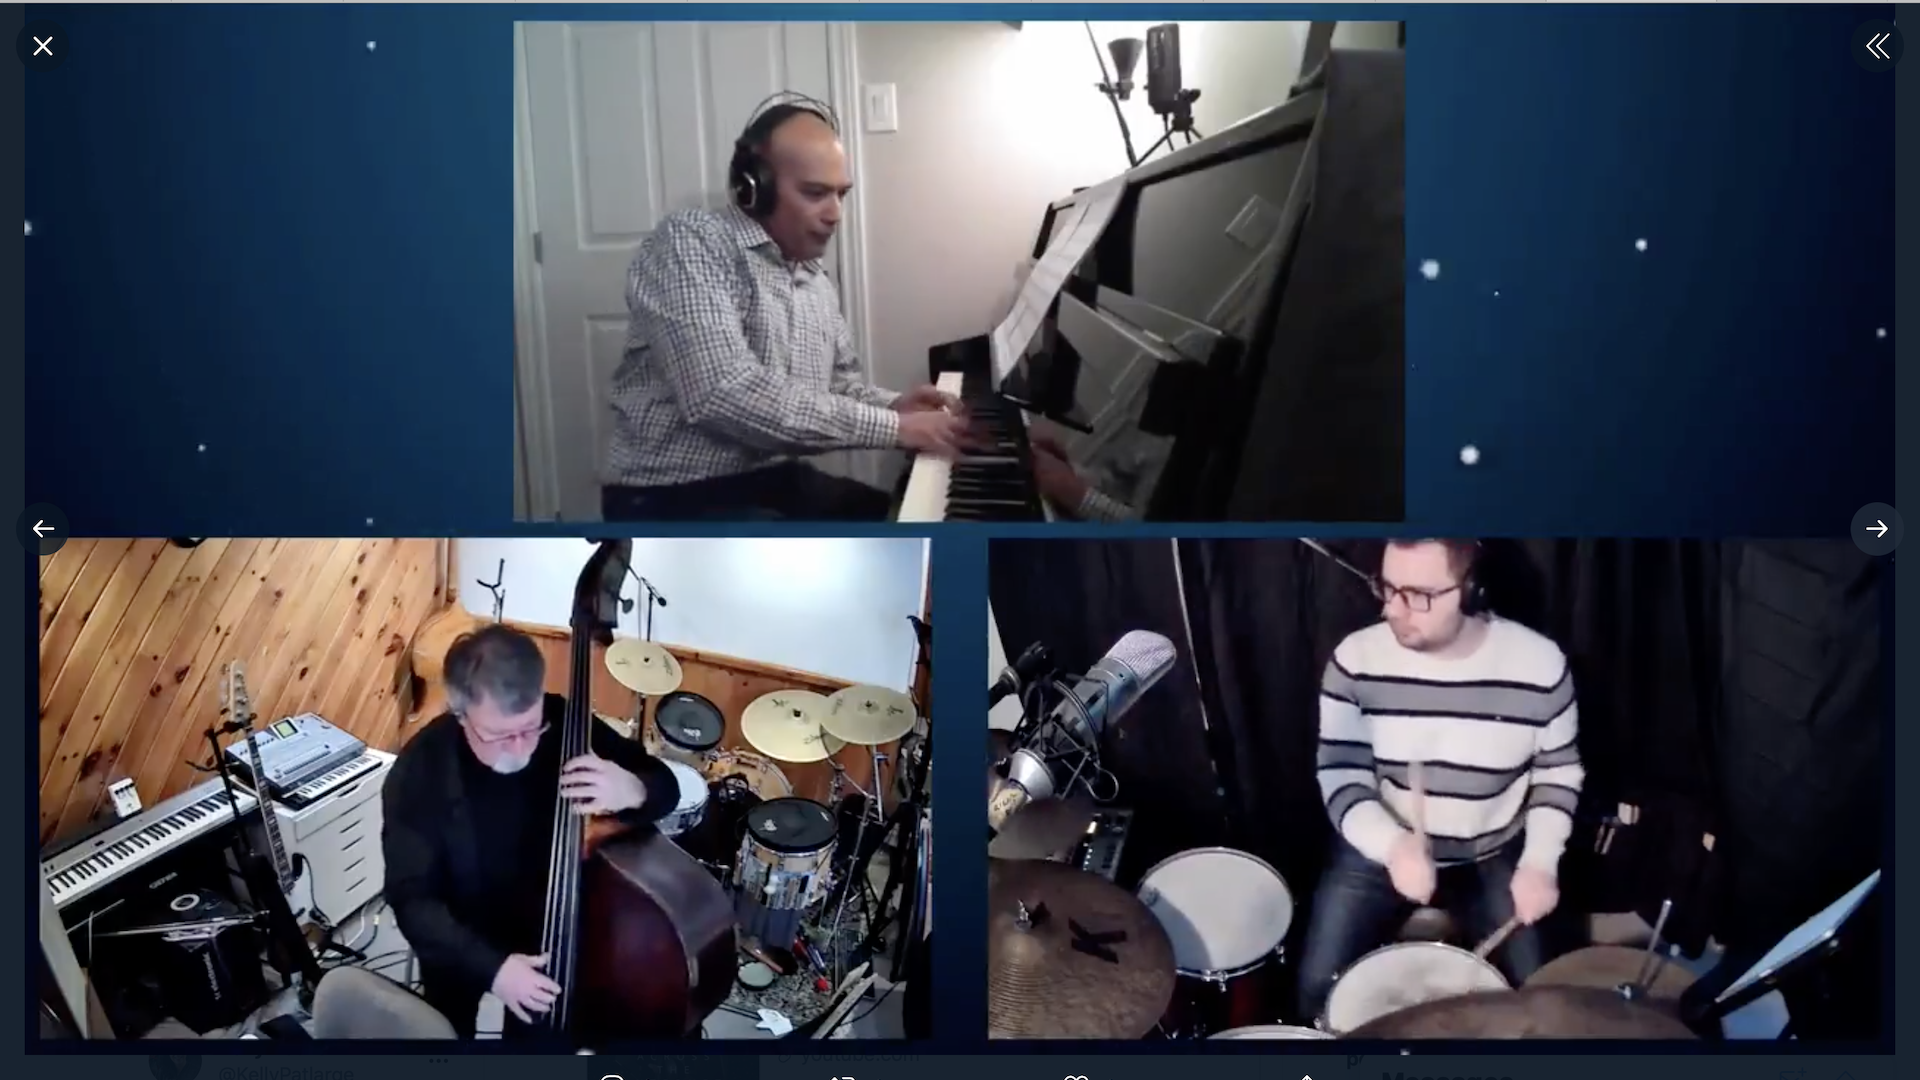 Three musicians performing together in three different rooms on the Syncspace.live platform.